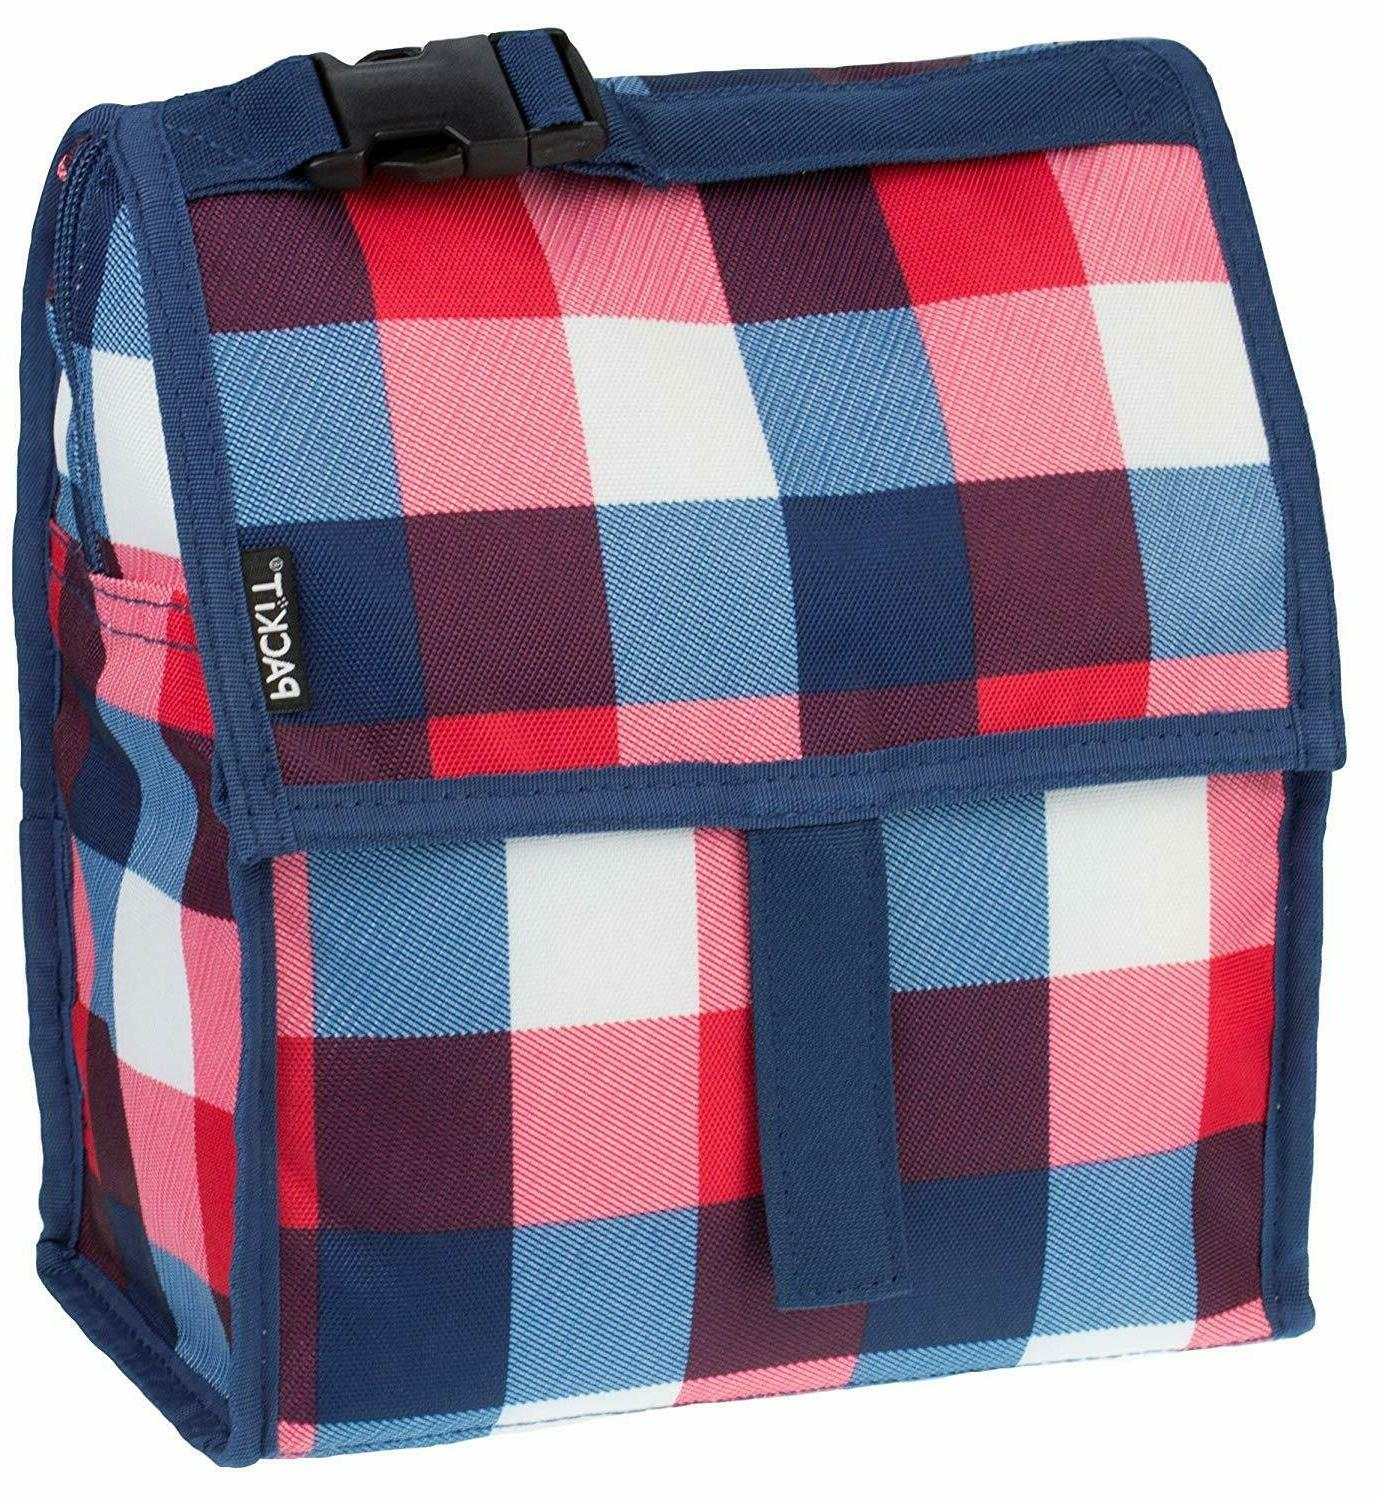 Office Picnic Gym Cooler Storage Tote Purse